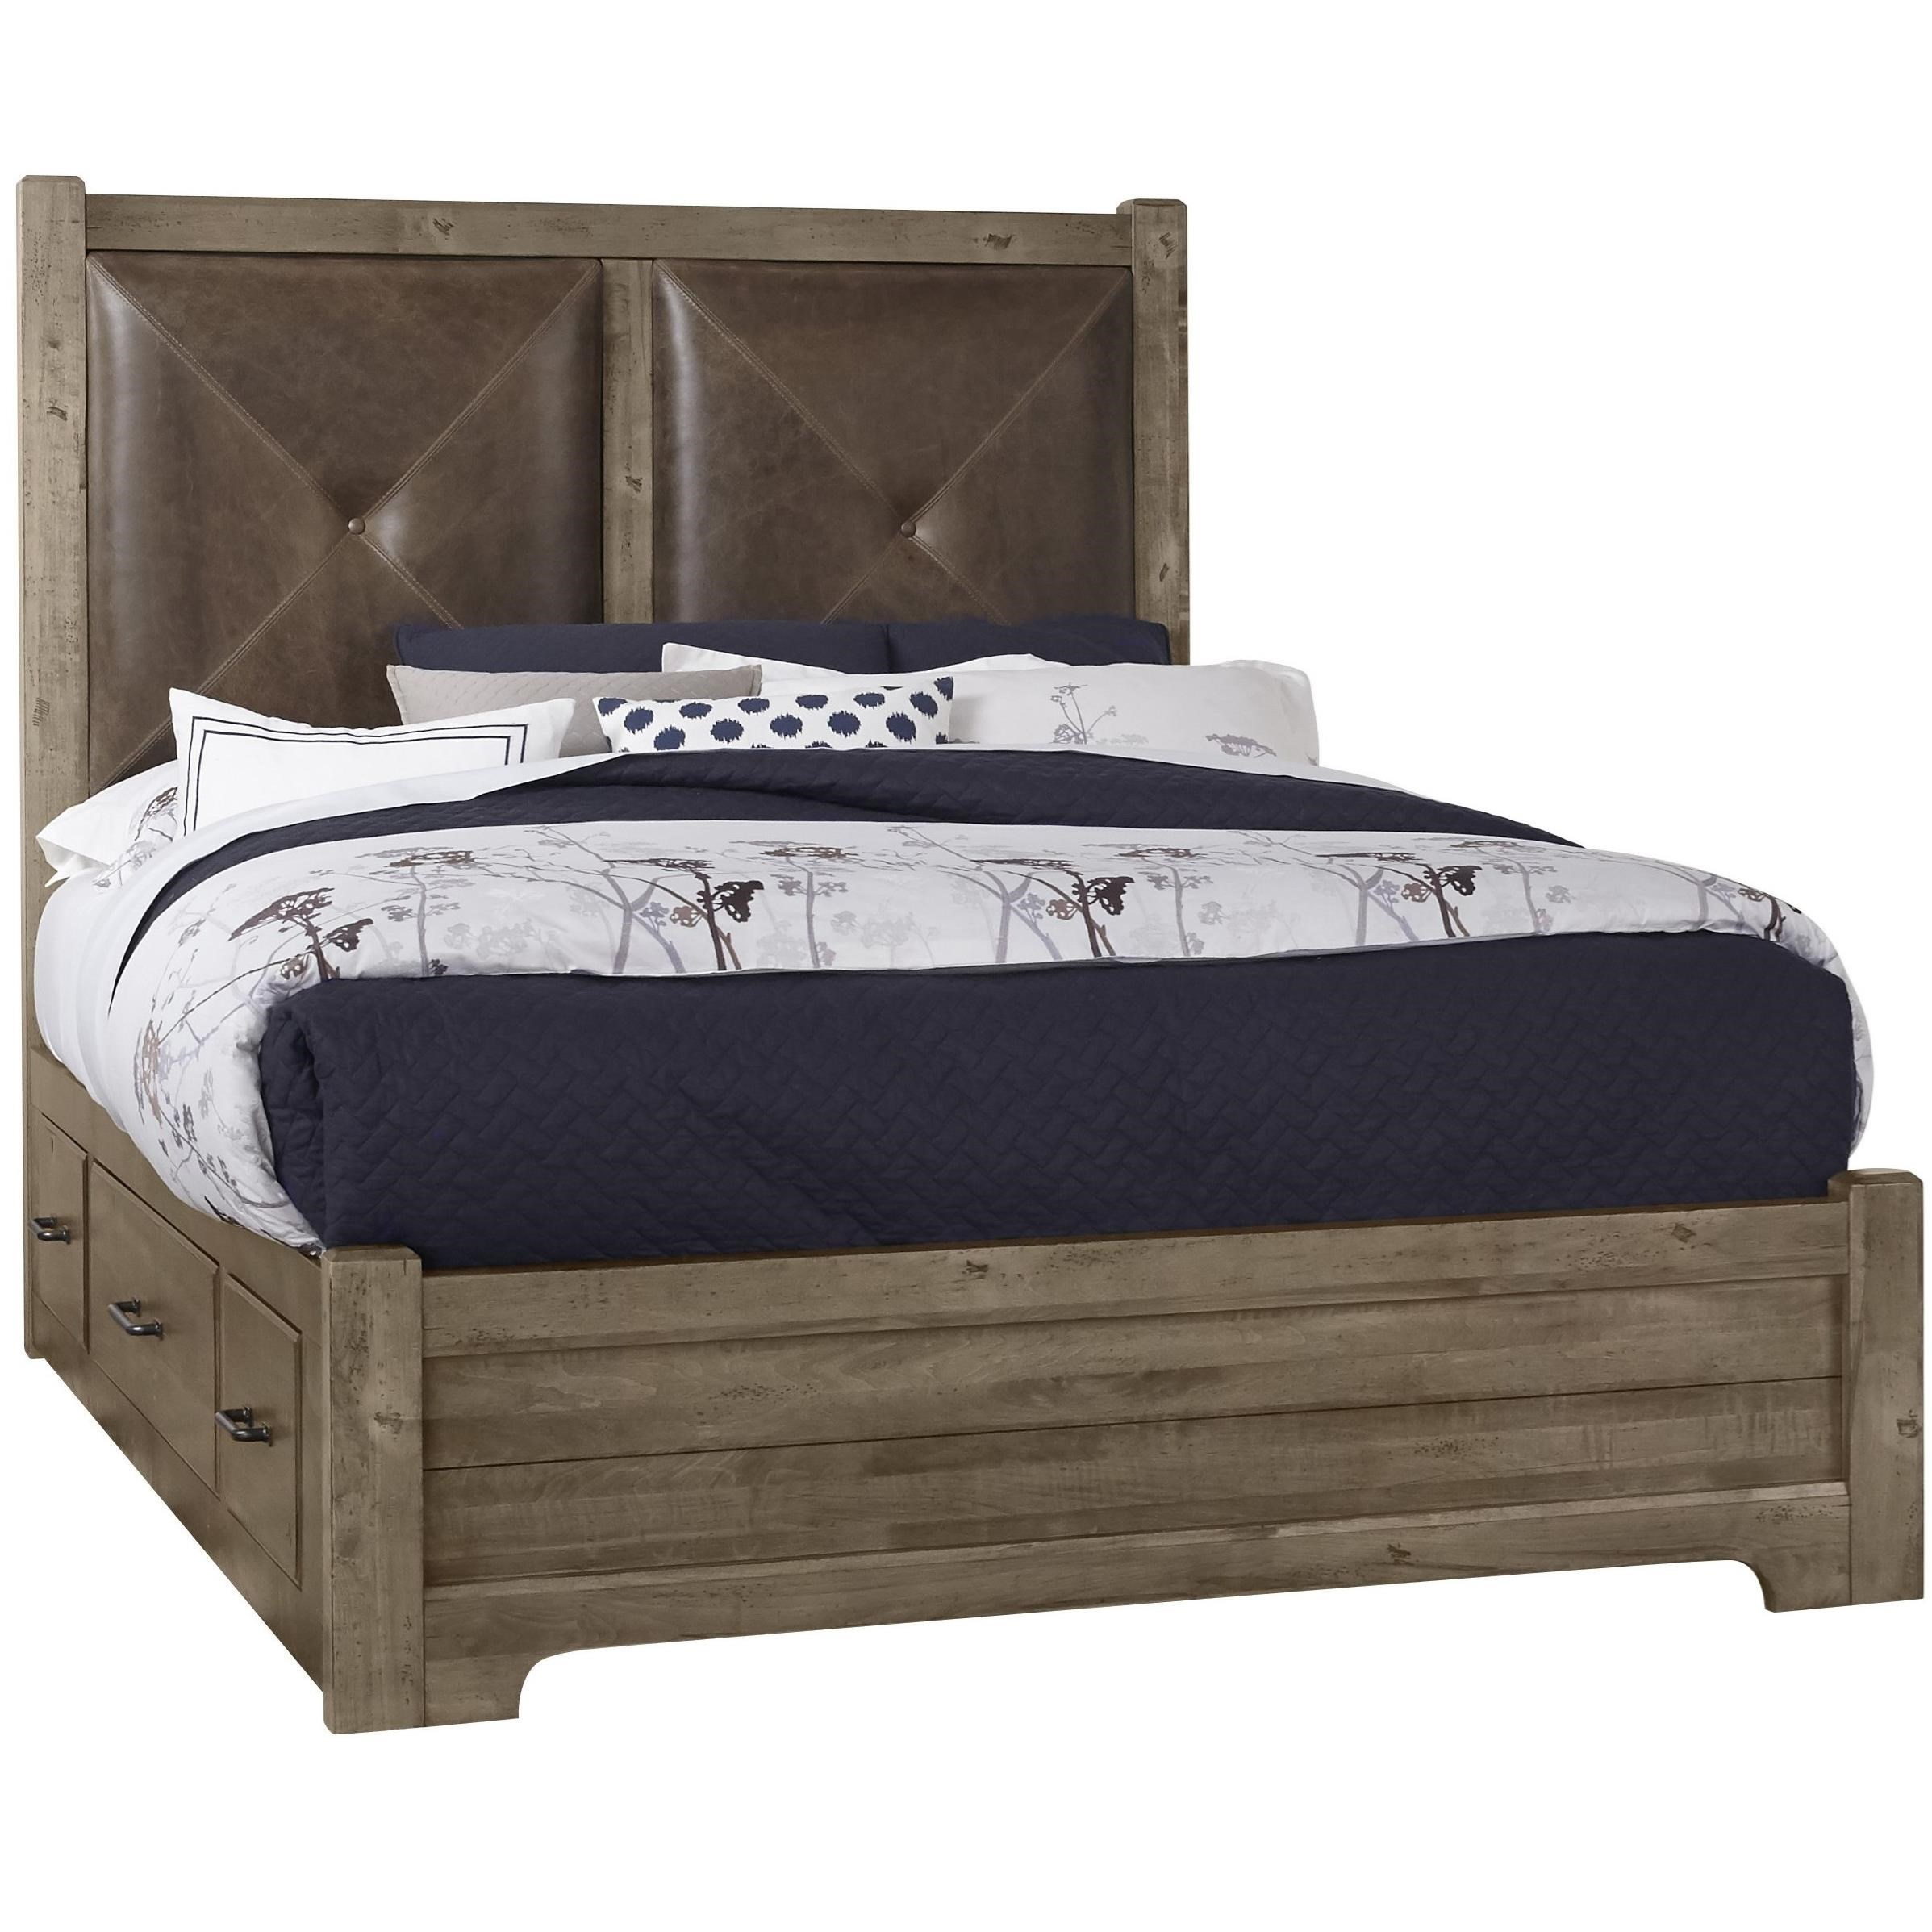 Leather Bed Frame Cool Rustic Solid Wood Queen Leather Headboard Bed With Double Side Storage By Artisan Post At Lapeer Furniture Mattress Center